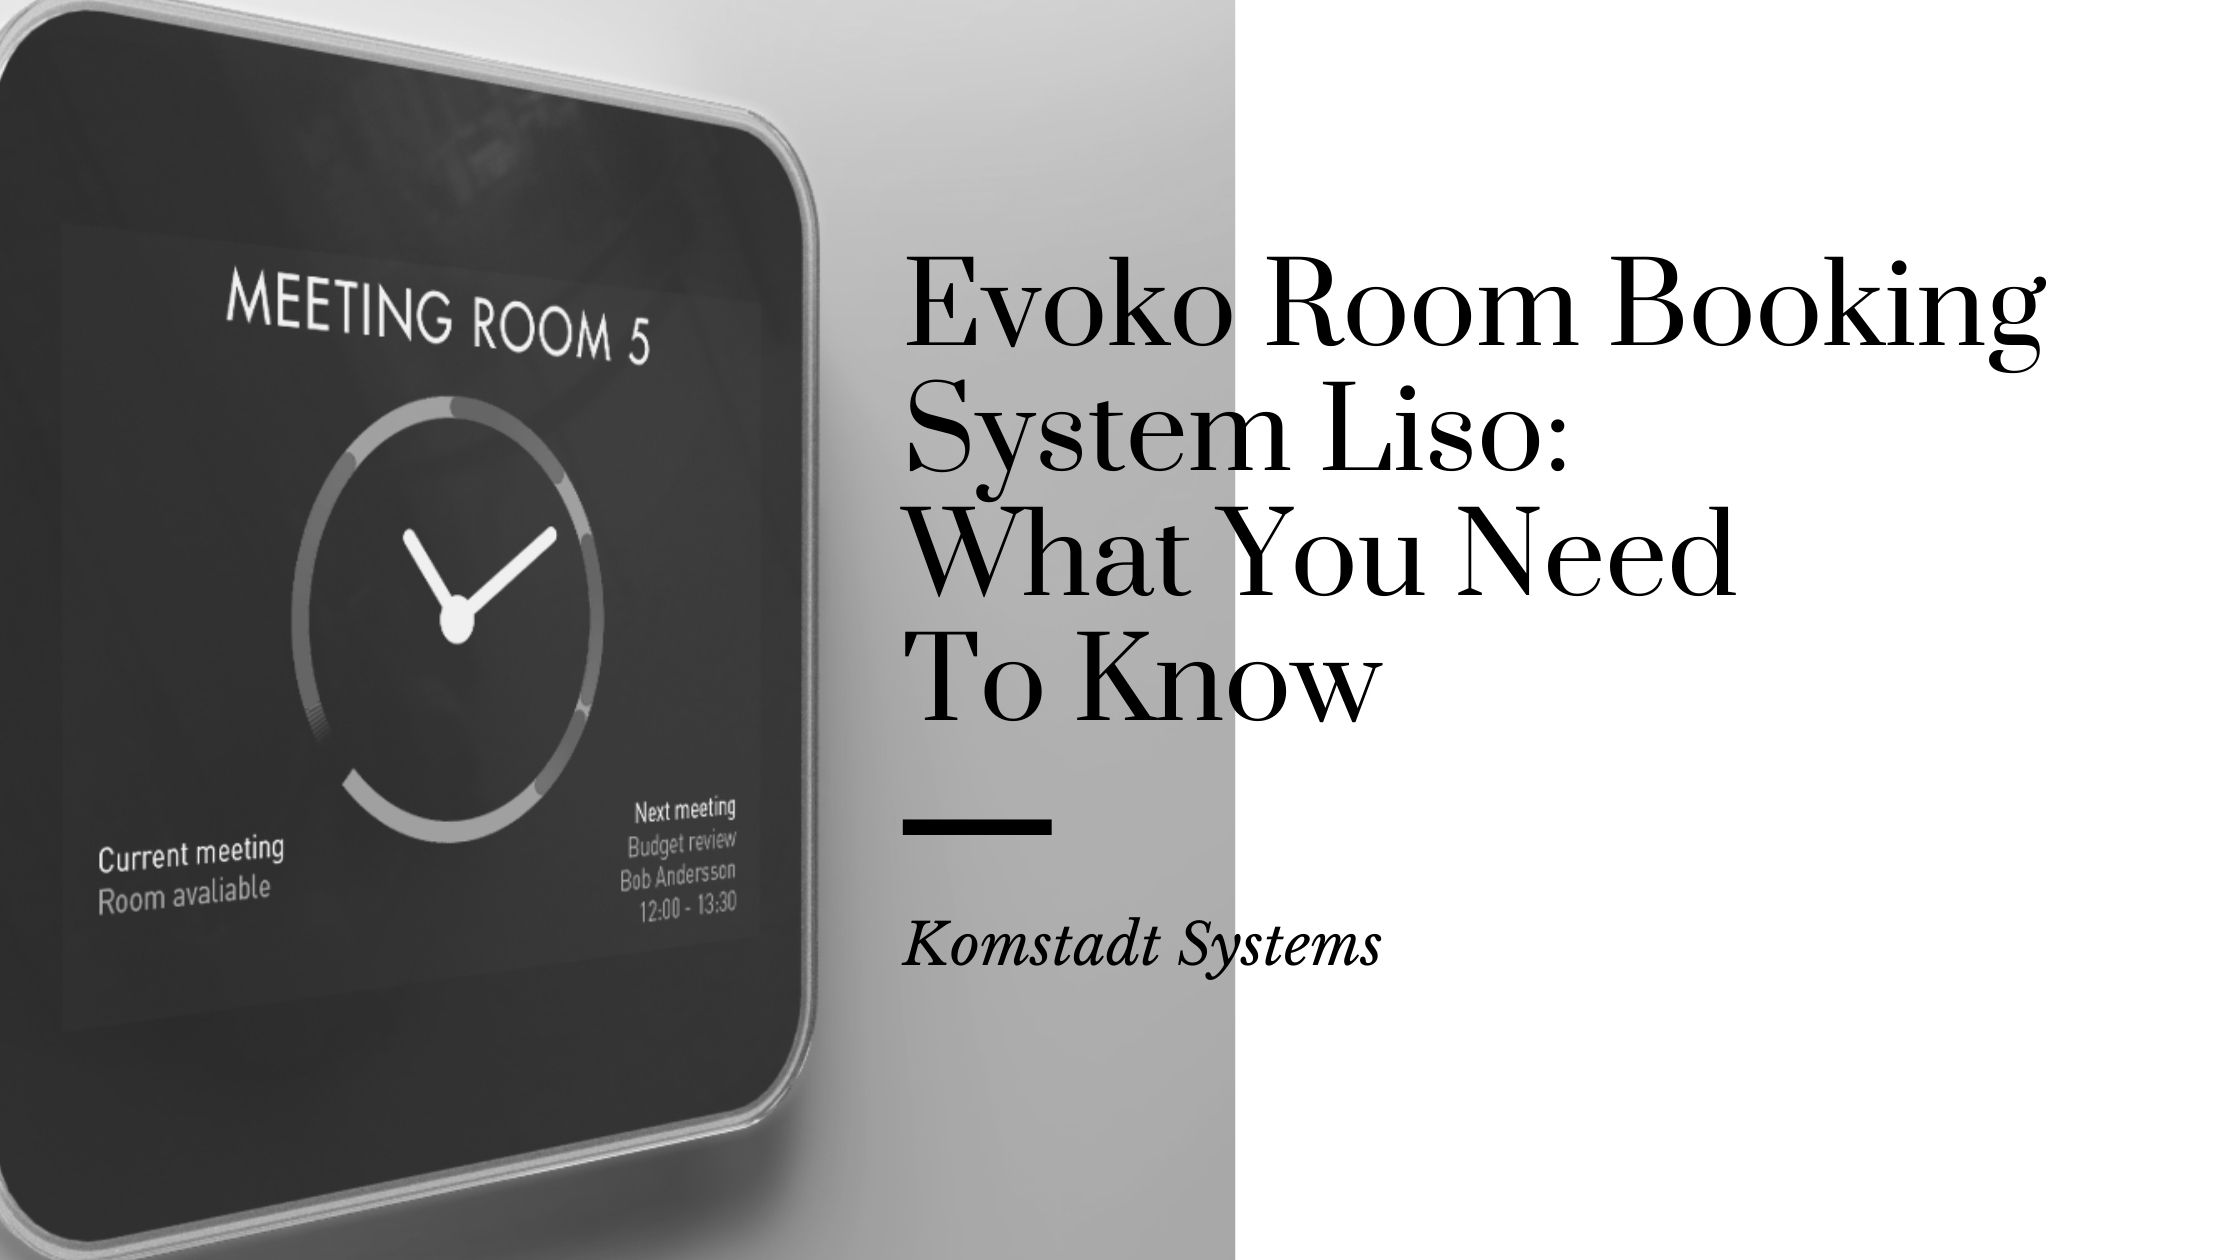 Evoko Room Booking System Liso_ What You Need To Know